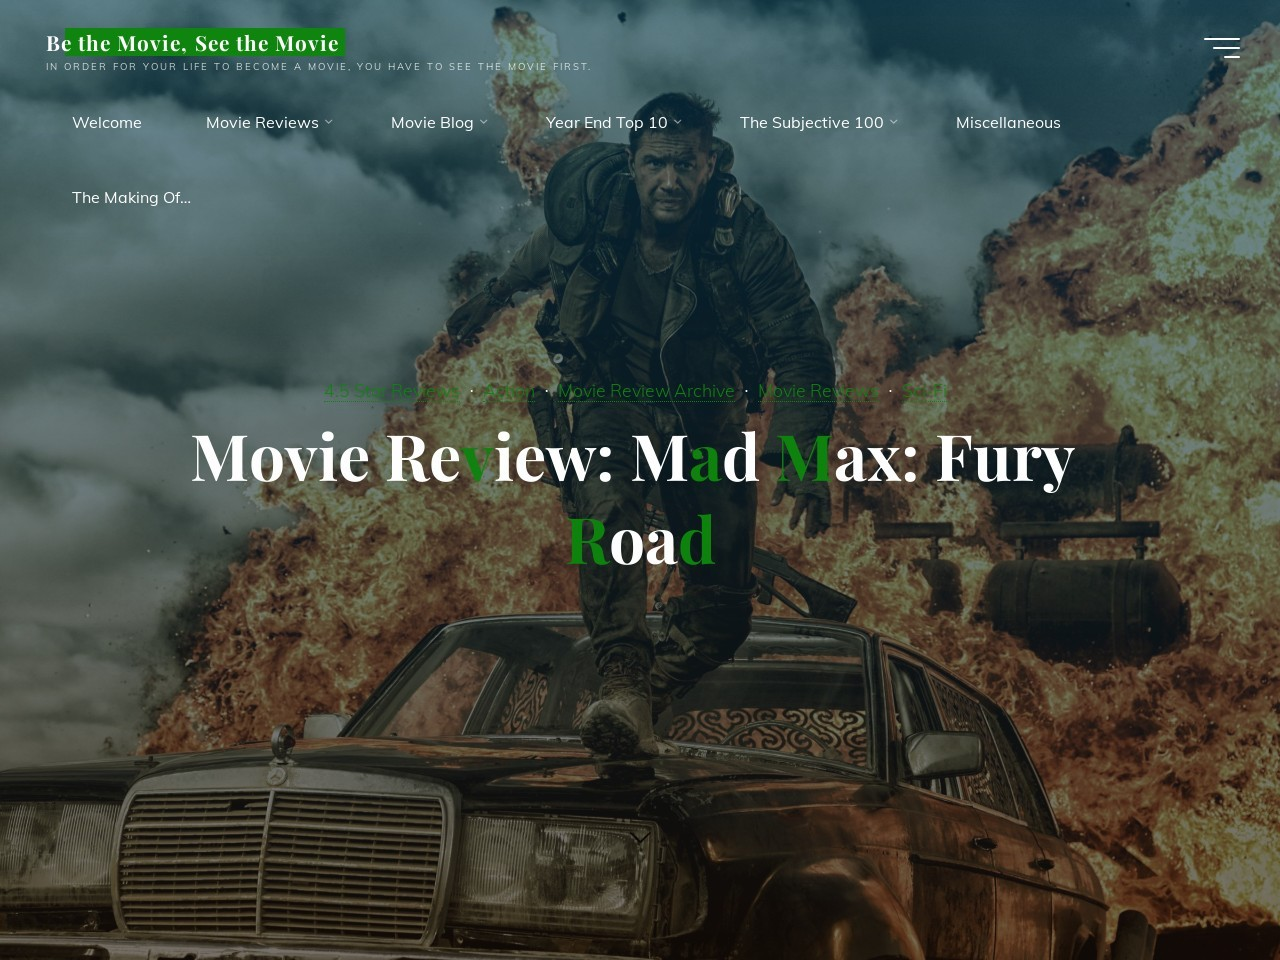 Movie Review: Mad Max: Fury Road | Be the Movie, See the …